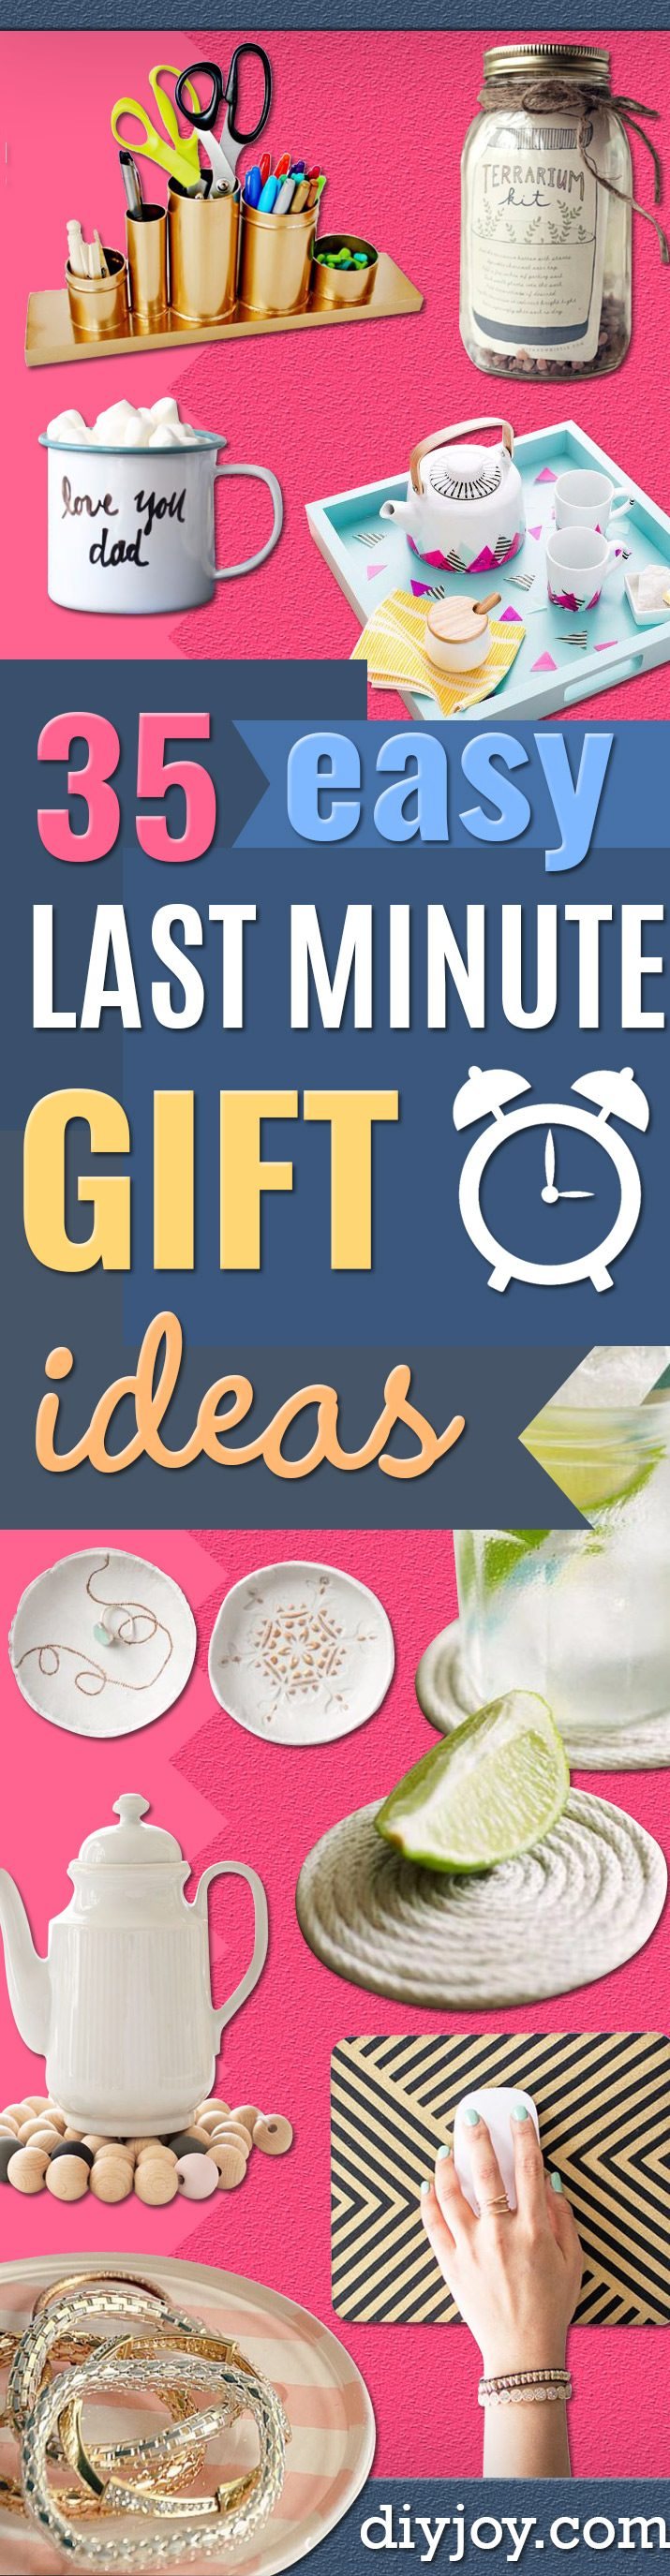 last minute christmas gifts diy - easy last minute gift ideas - quick gifts to make - Quick DIY Gift Ideas and Easy Christmas Presents To Make for Mom, Dad, Family and Friends - Dollar Store Crafts and Cheap Homemade Gifts, Mason Jar Ideas for Gifts in A Jar